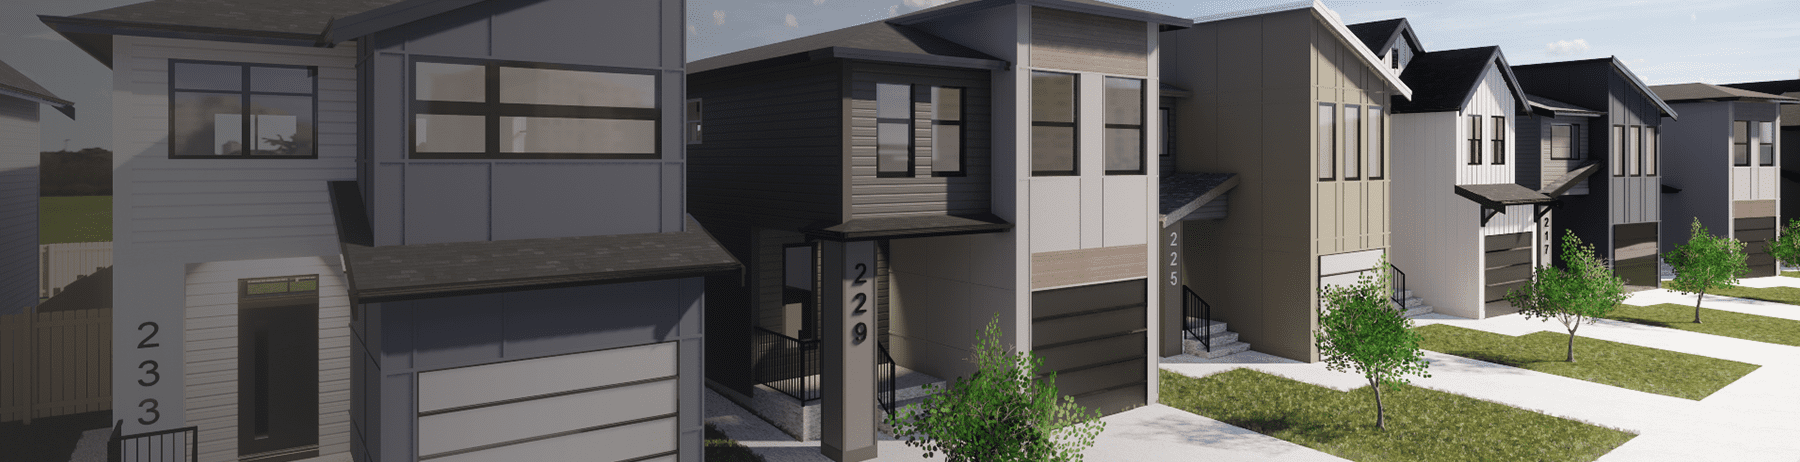 Vesta Copperstone New Homes For Sale In Calgary